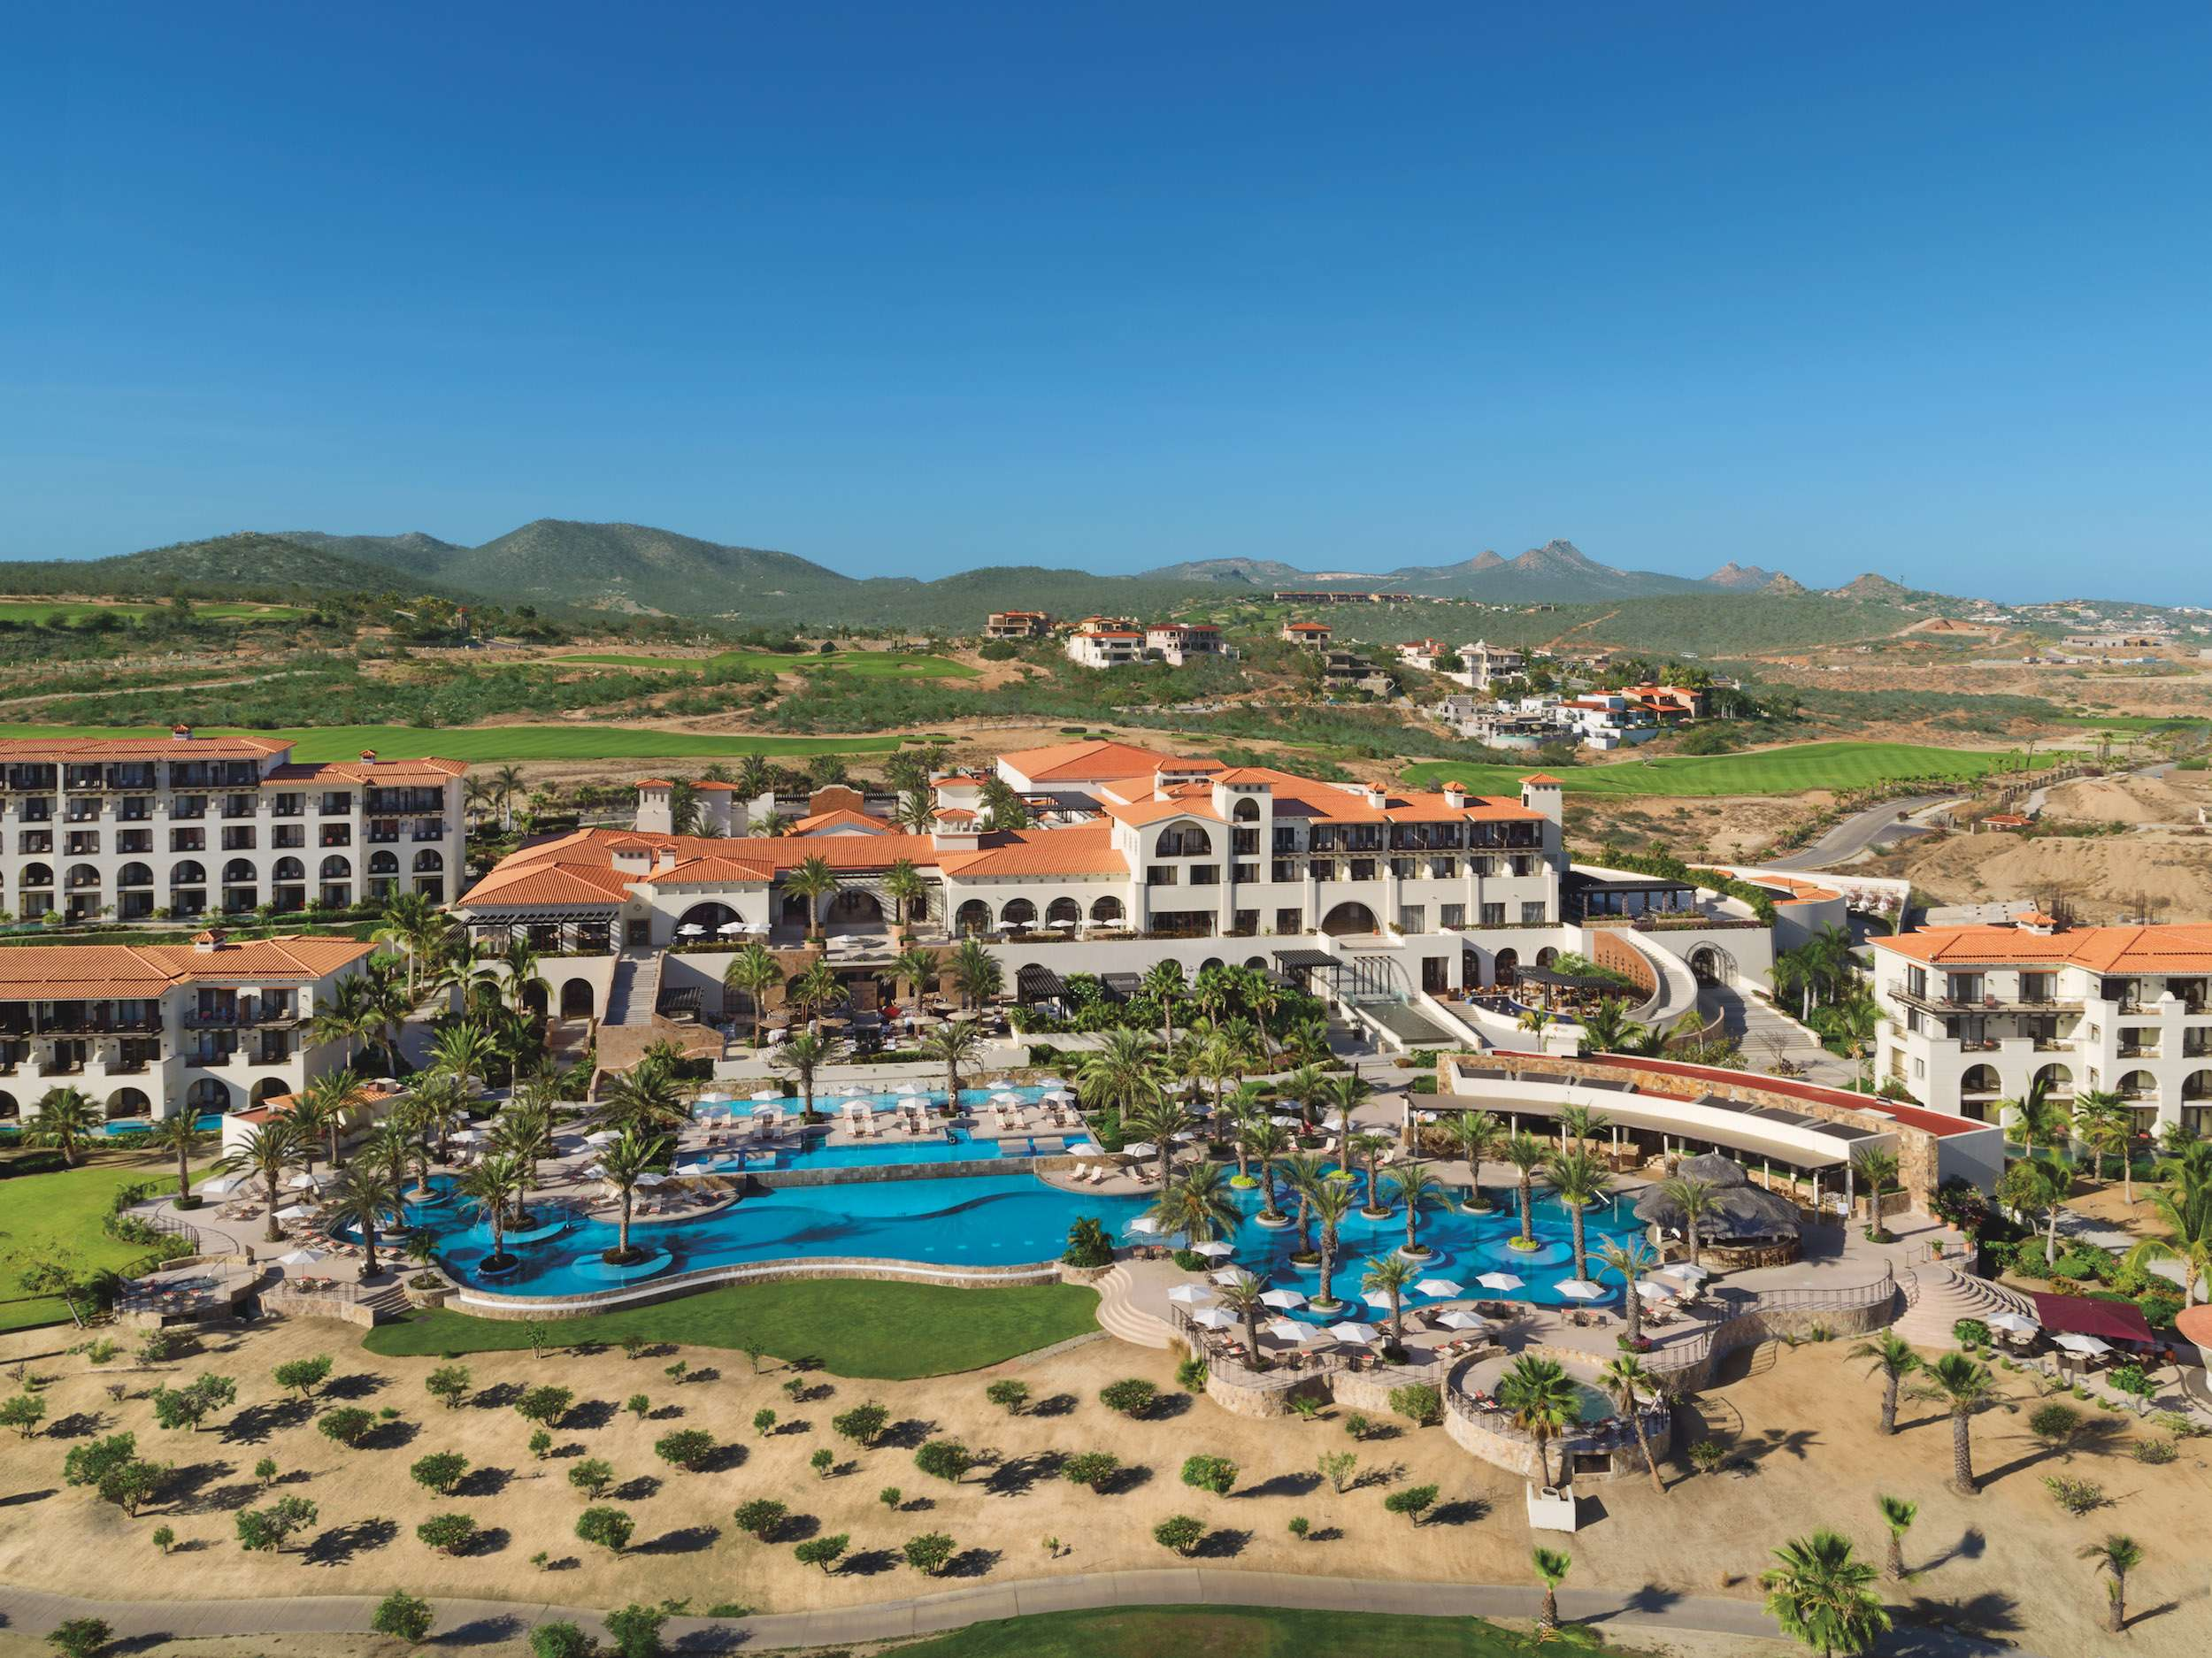 Image of Secrets Puerto Los Cabos Golf & Spa Resort, Baja California Peninsula, Mexico